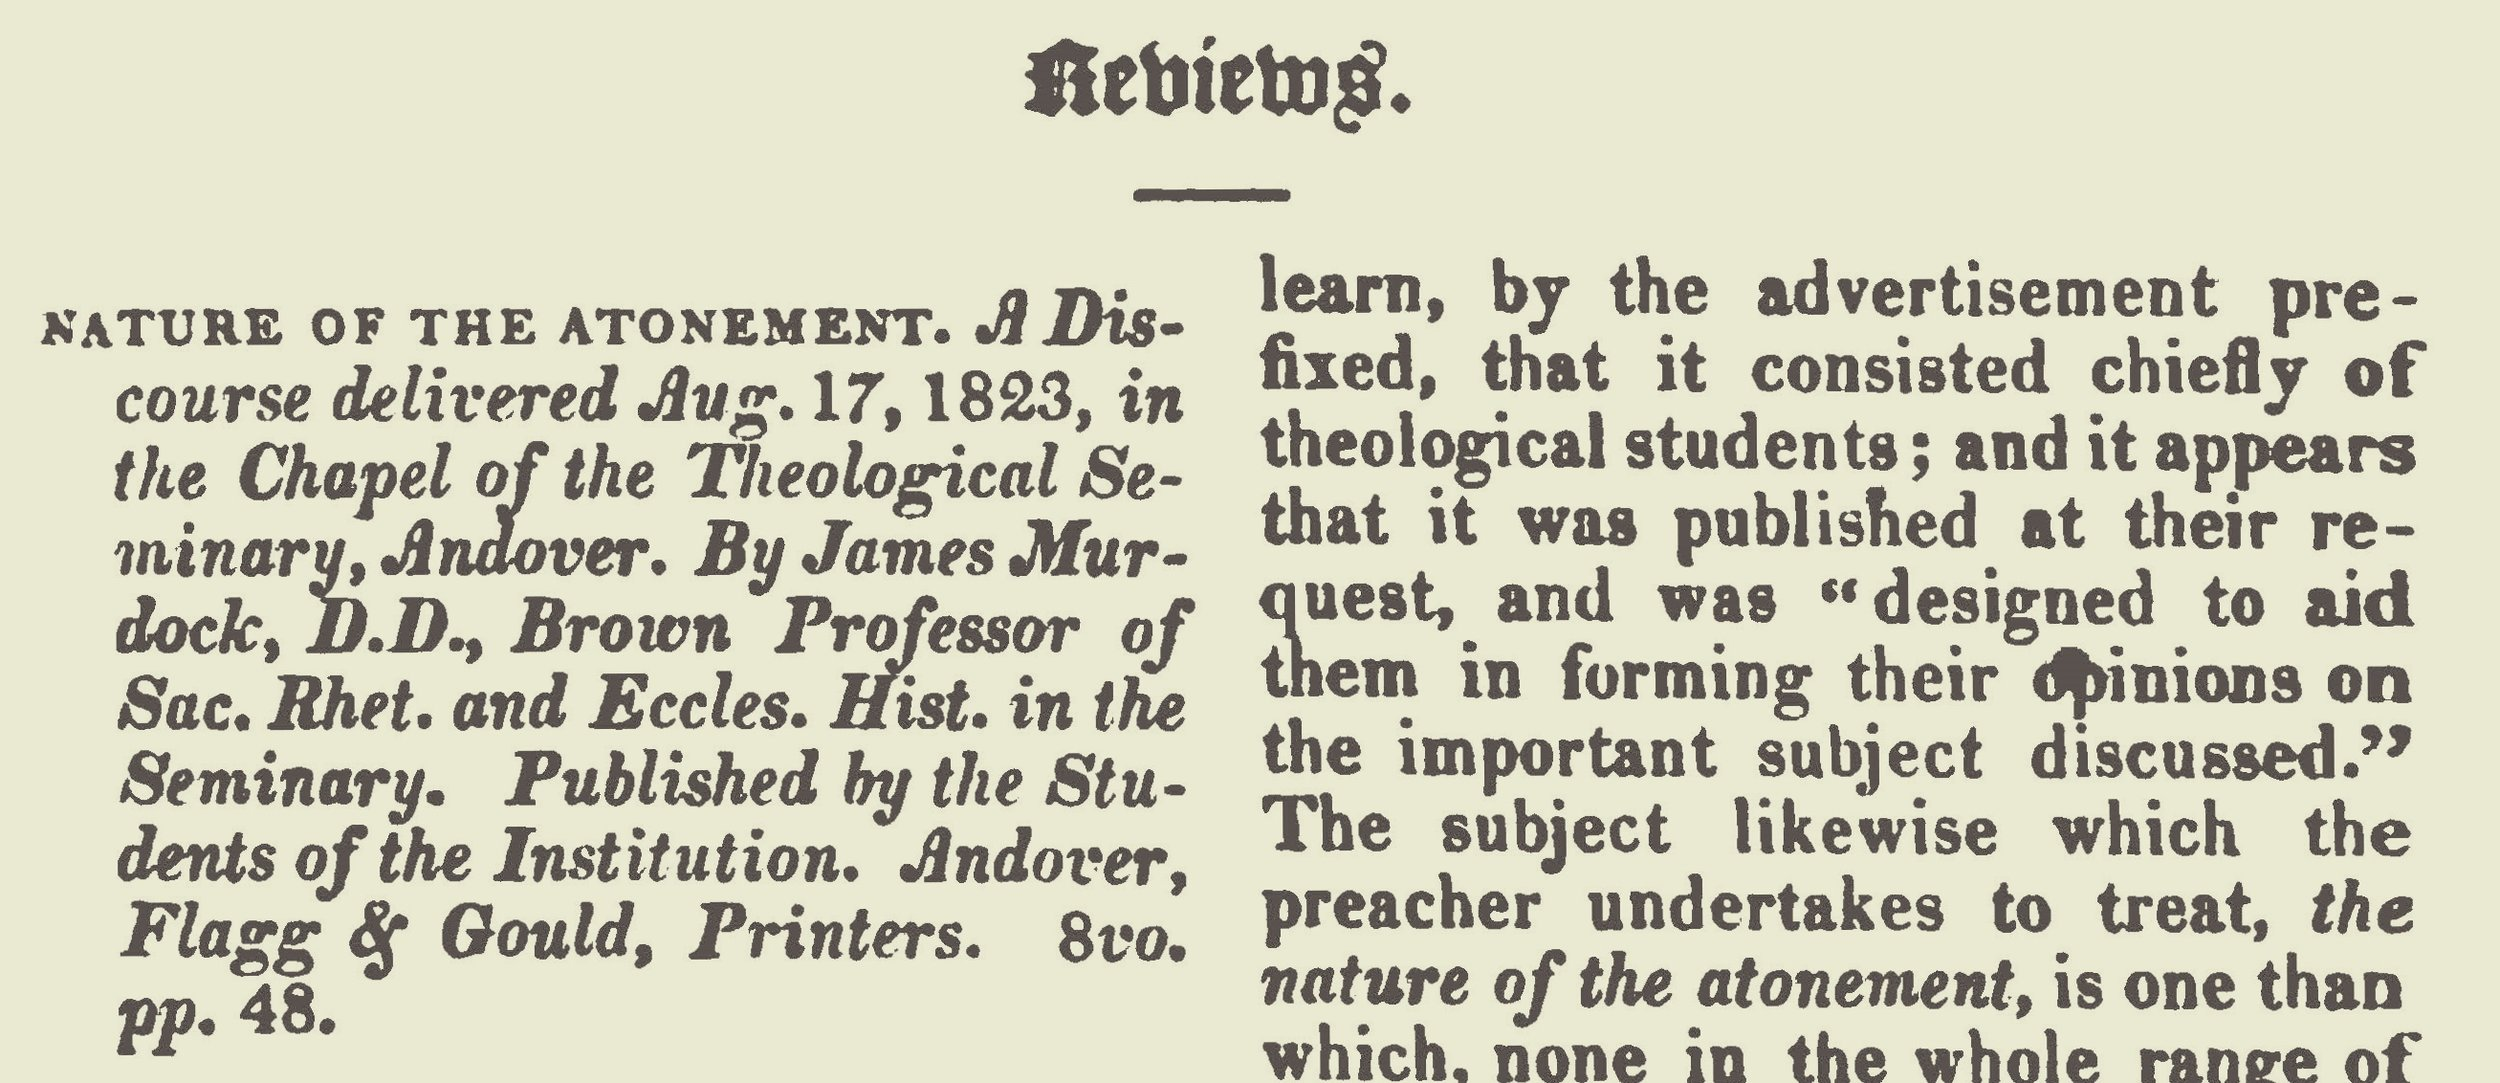 This review is a 3-part article which was published in the February, March and April 1824 issues of The Christian Advocate.